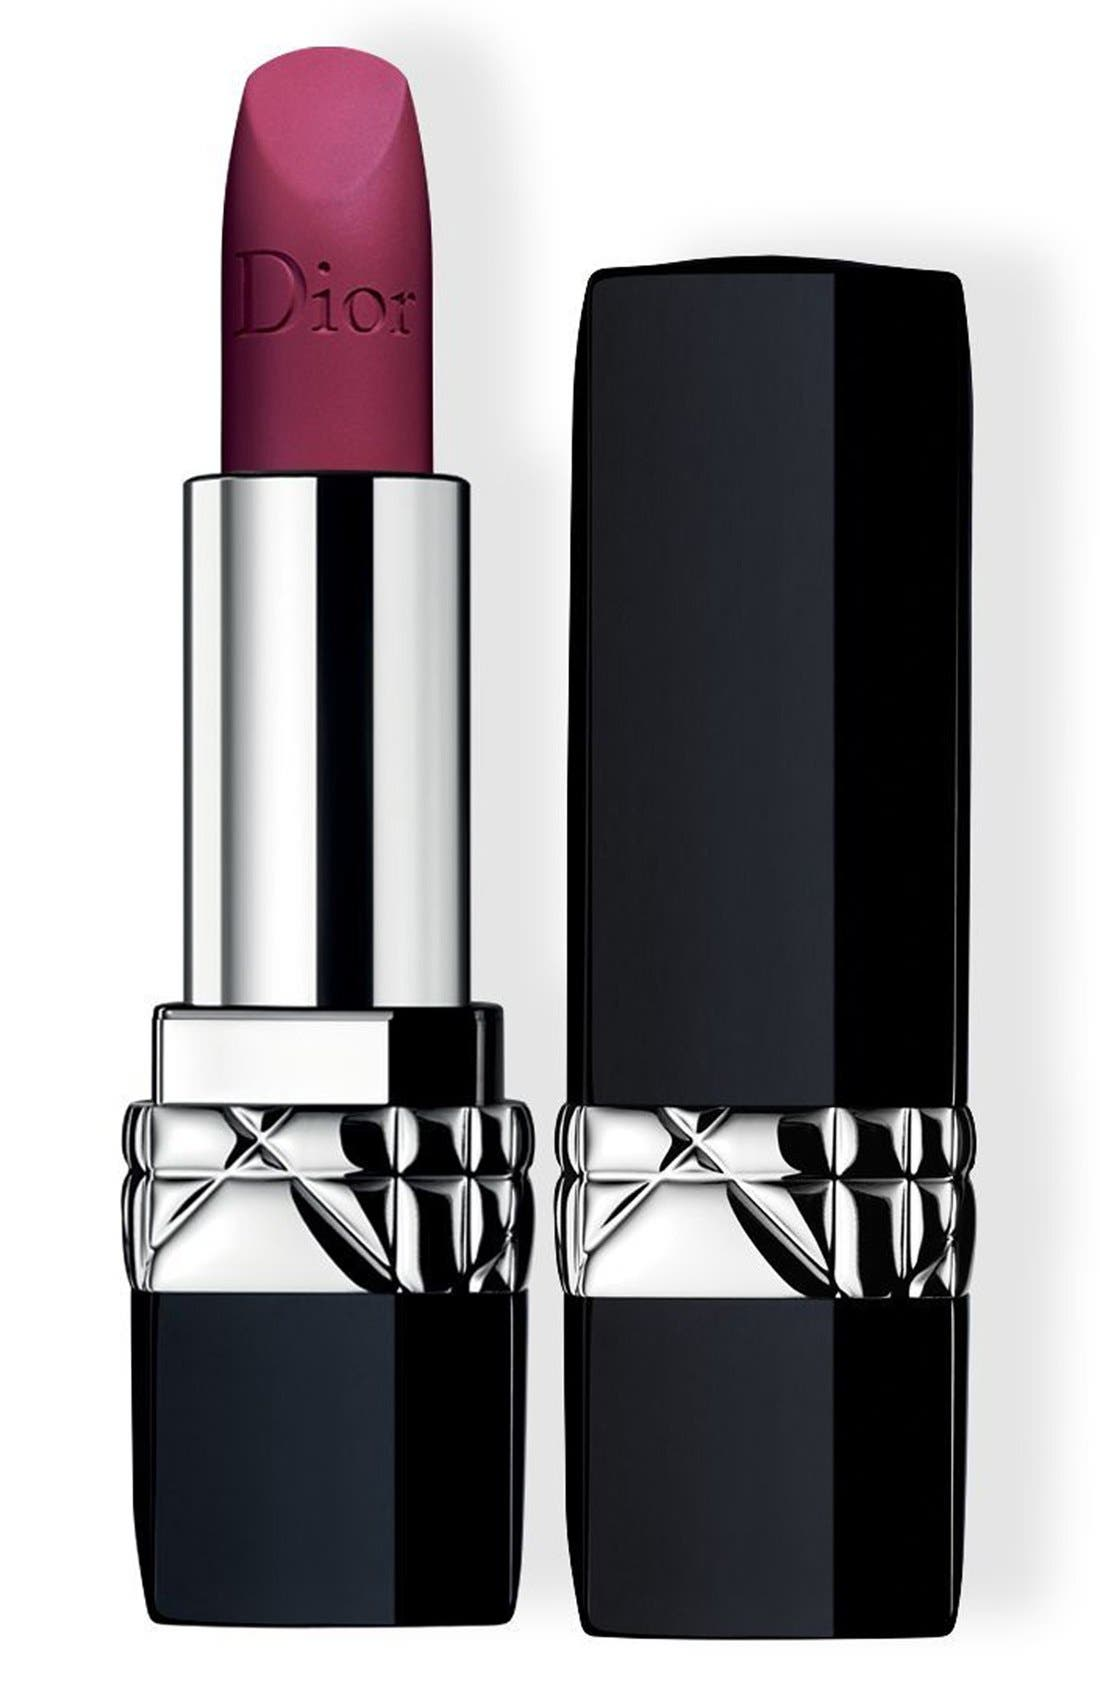 Dior Couture Color Rouge Dior Lipstick - 897 Mysterious Matte